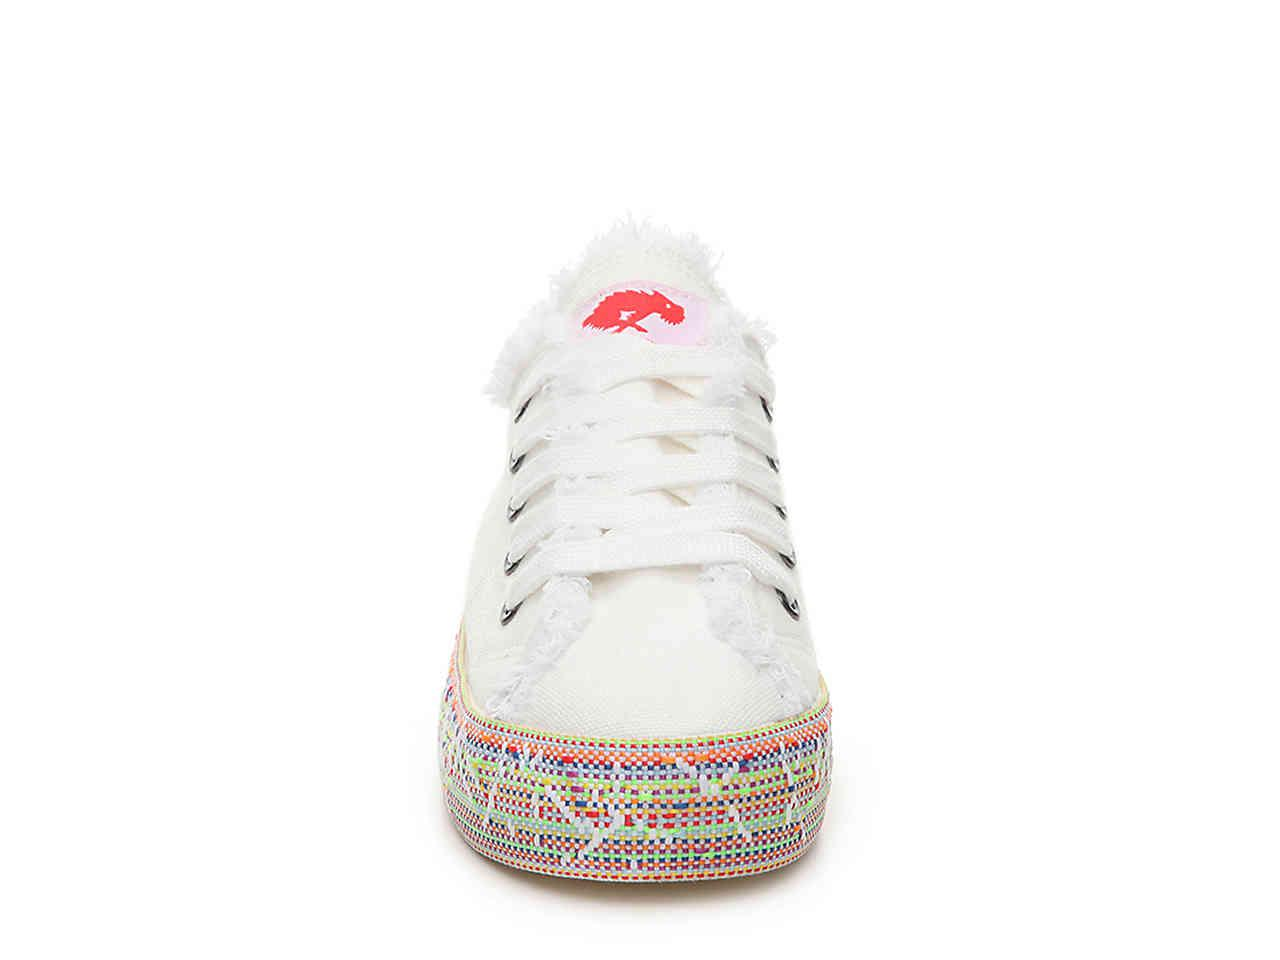 f15224ab5e5 Lyst - Rocket Dog Marisol Friendship Flatform Sneaker in White